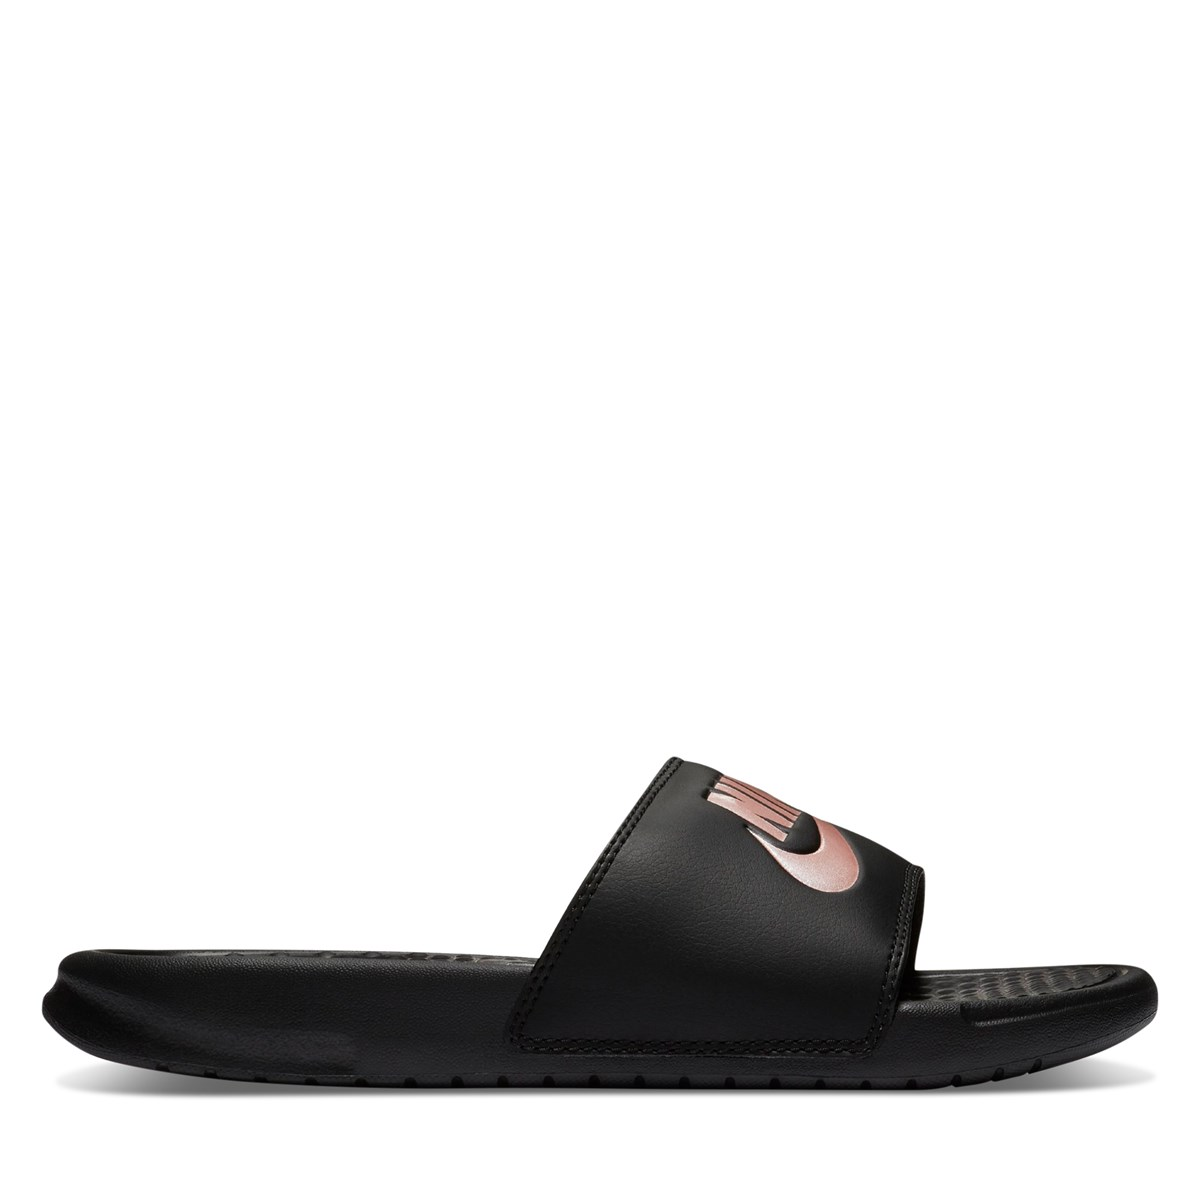 9cecc31f40a2 Women s Nike Benassi JDI Slide in Black